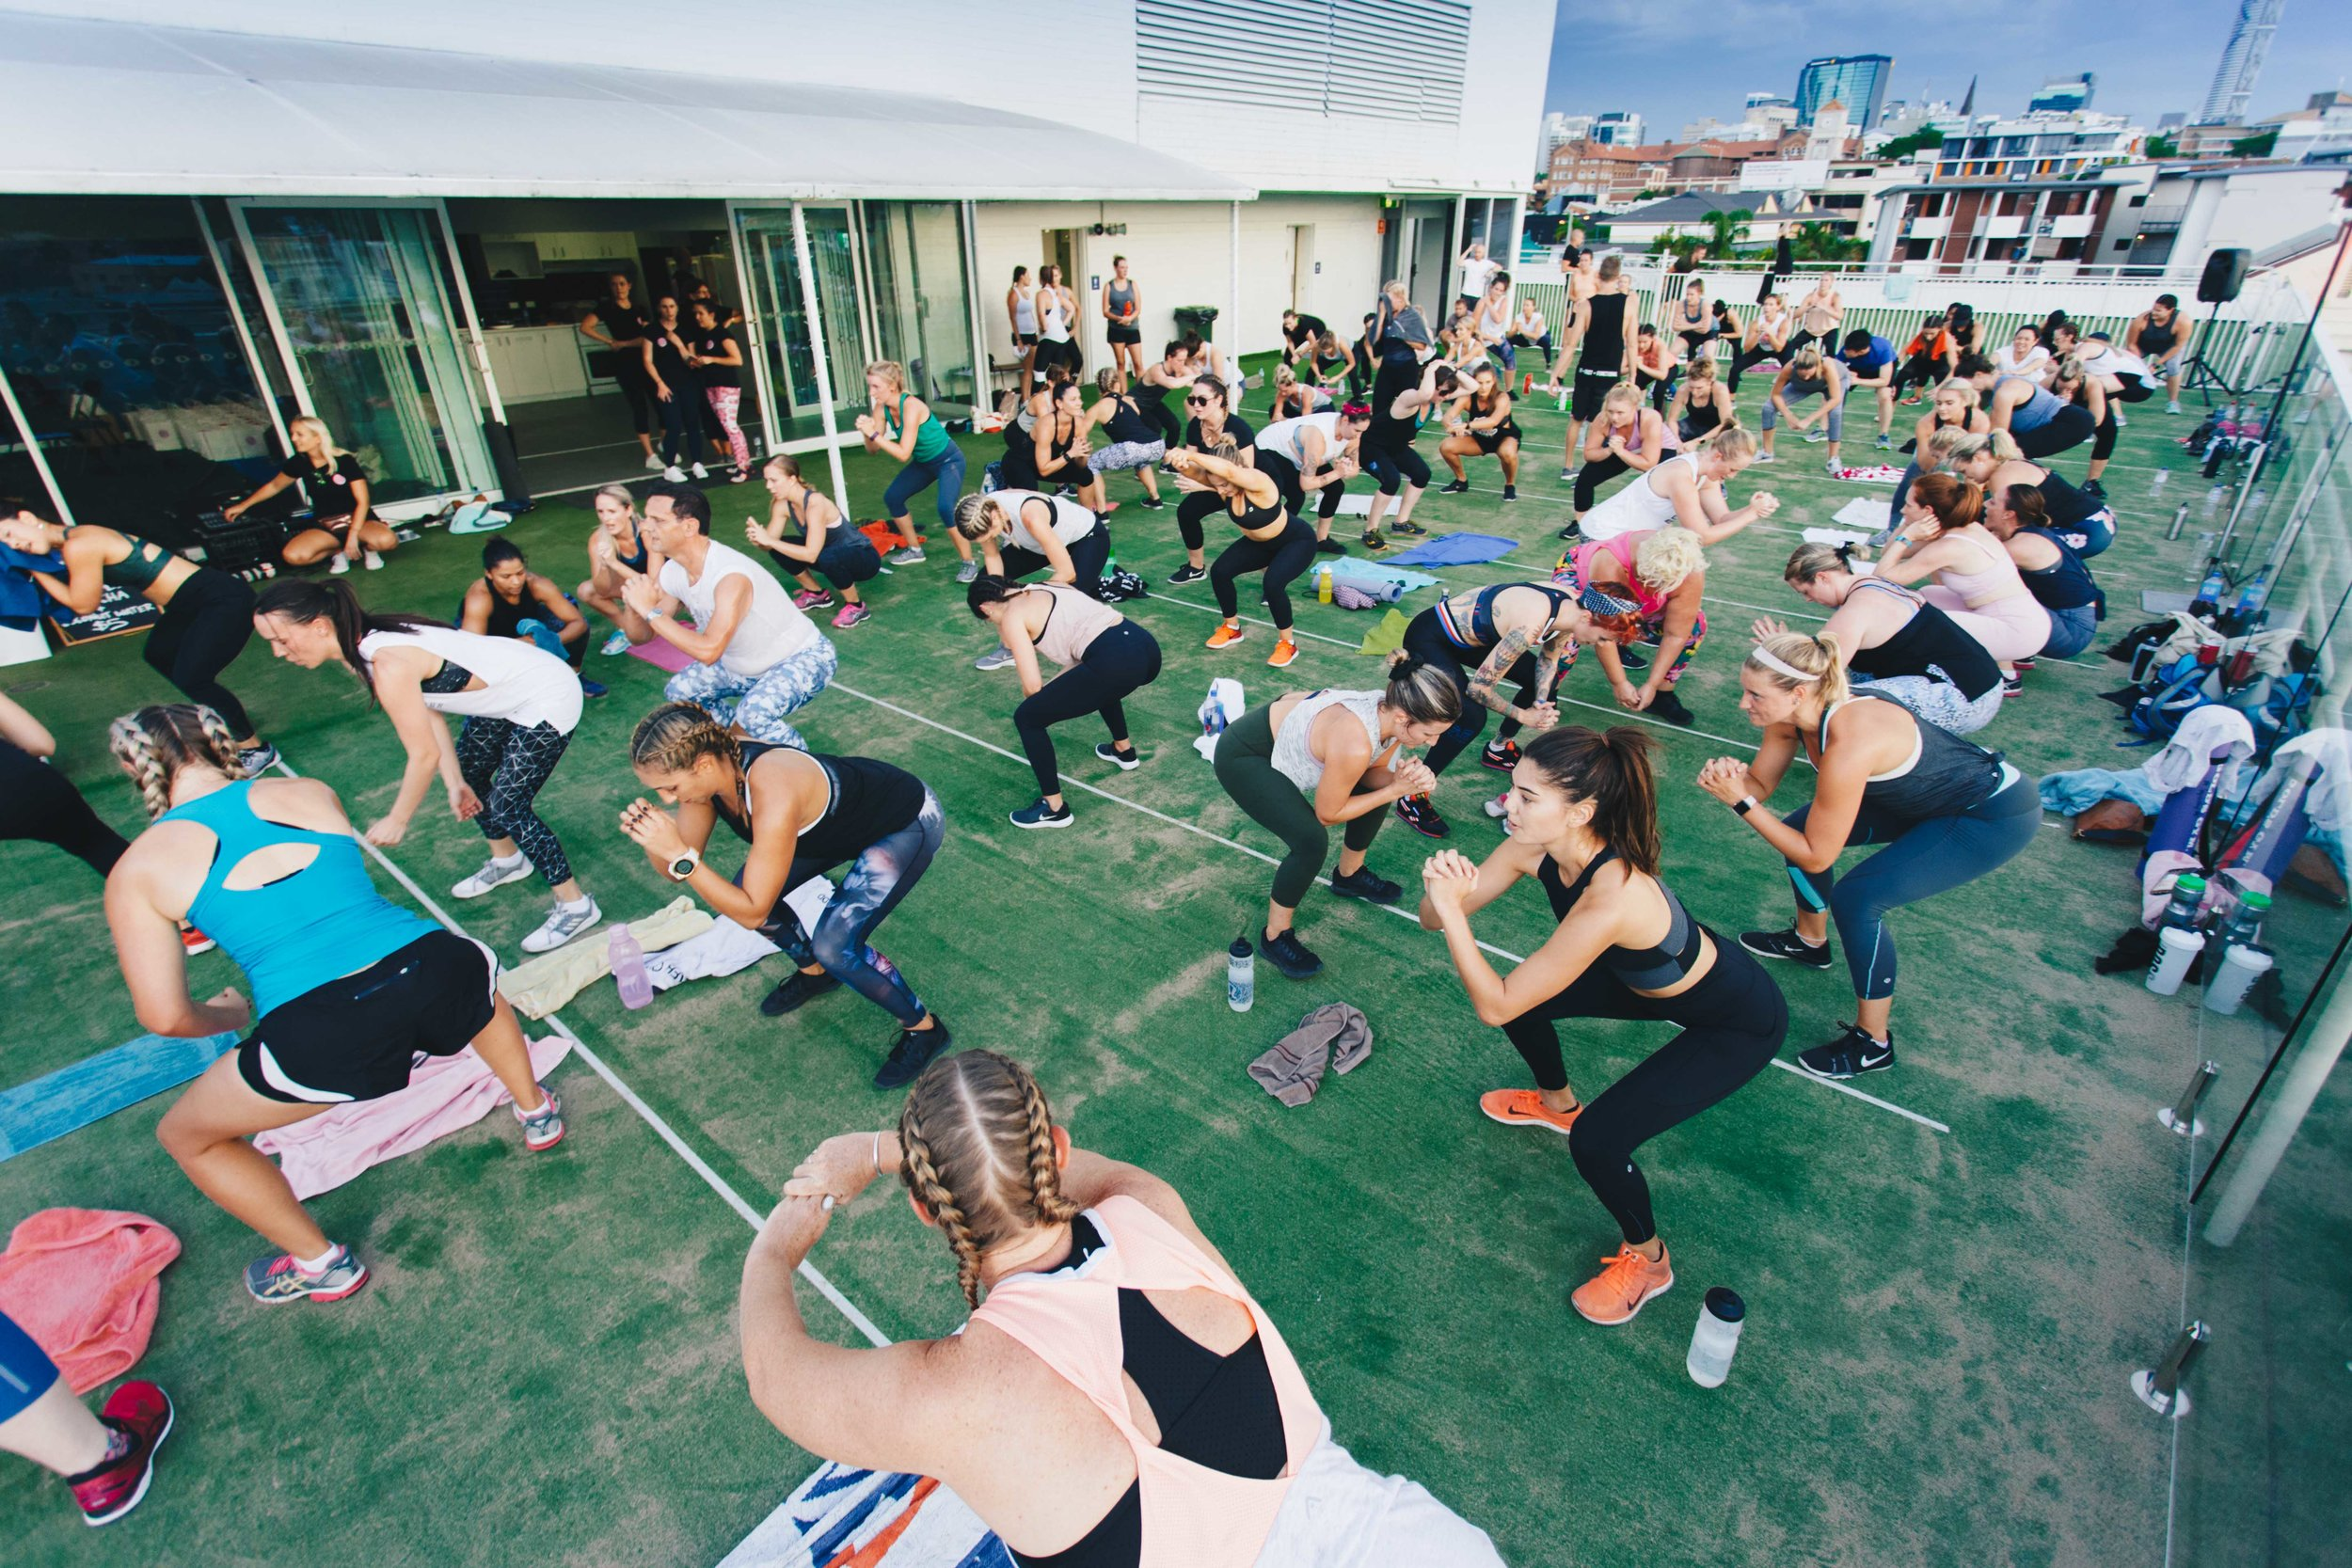 Secret Skyline Sweat - Sunday 11 February at a Secret Rooftop location in Fortitude ValleyHIIT workout with Fitstop Australia & Yoga flow with Dr Laura Elliot